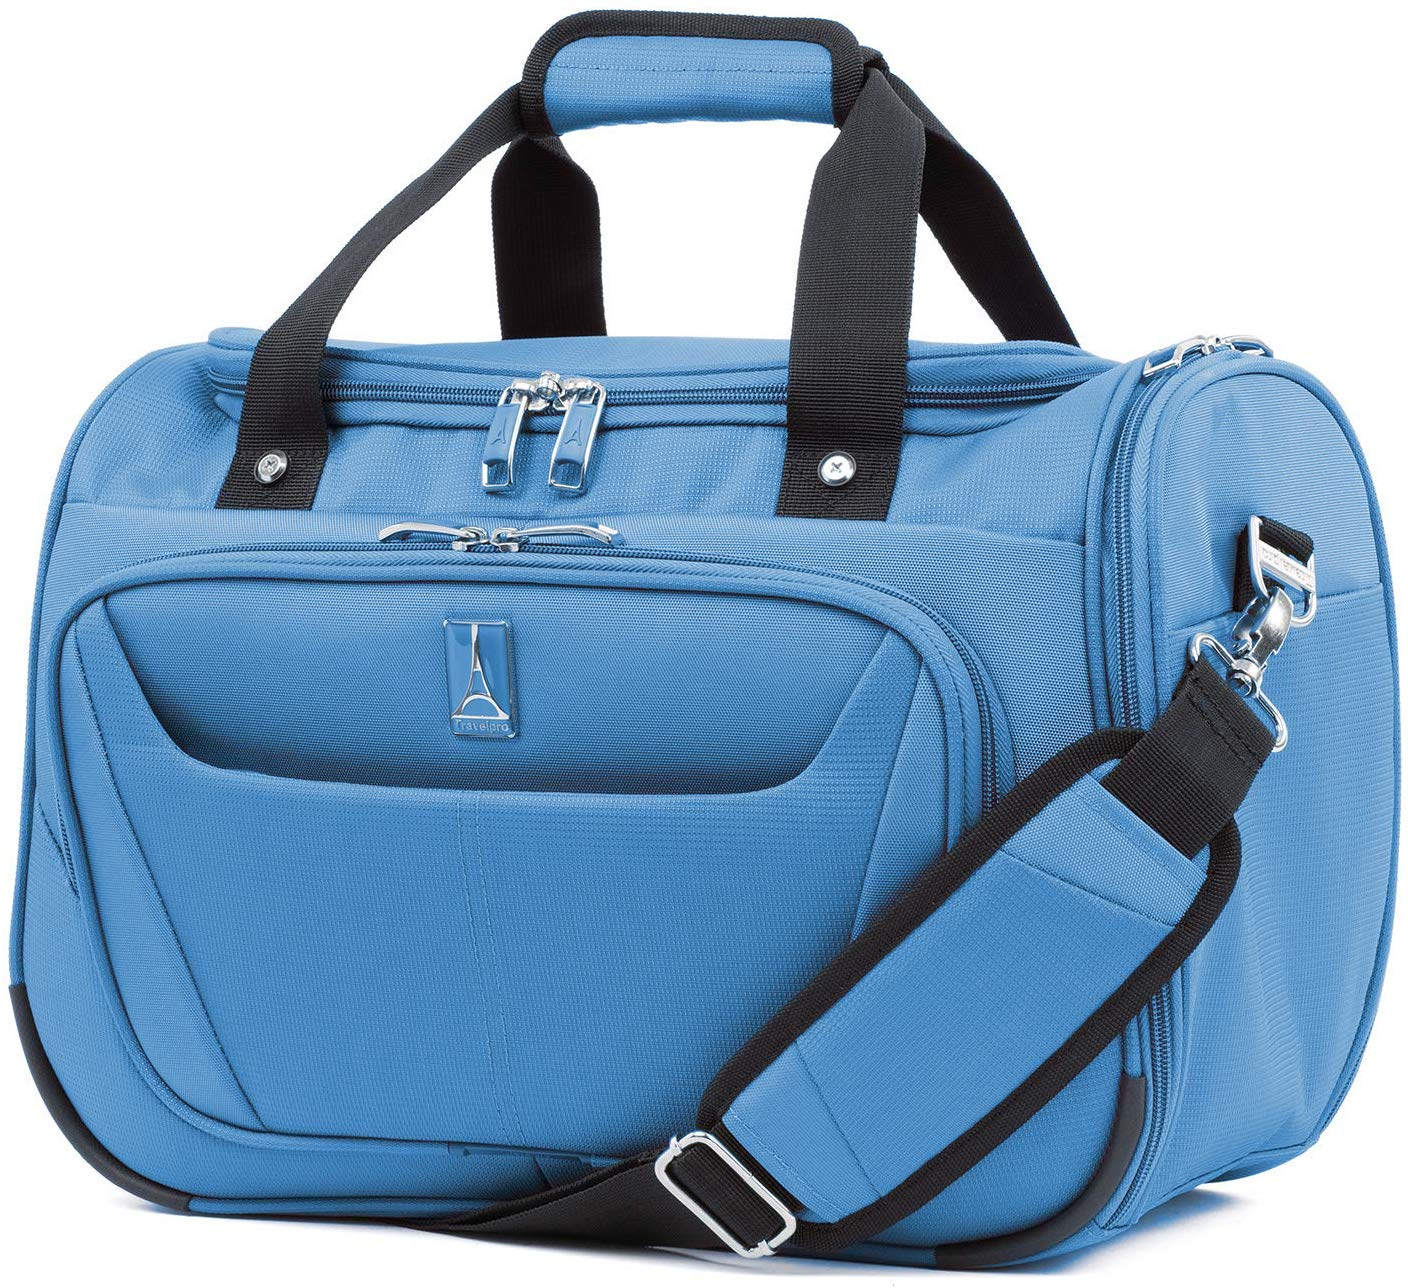 """Travelpro Luggage Maxlite 5 18"""" Lightweight Carry-on Under Seat Tote Travel"""